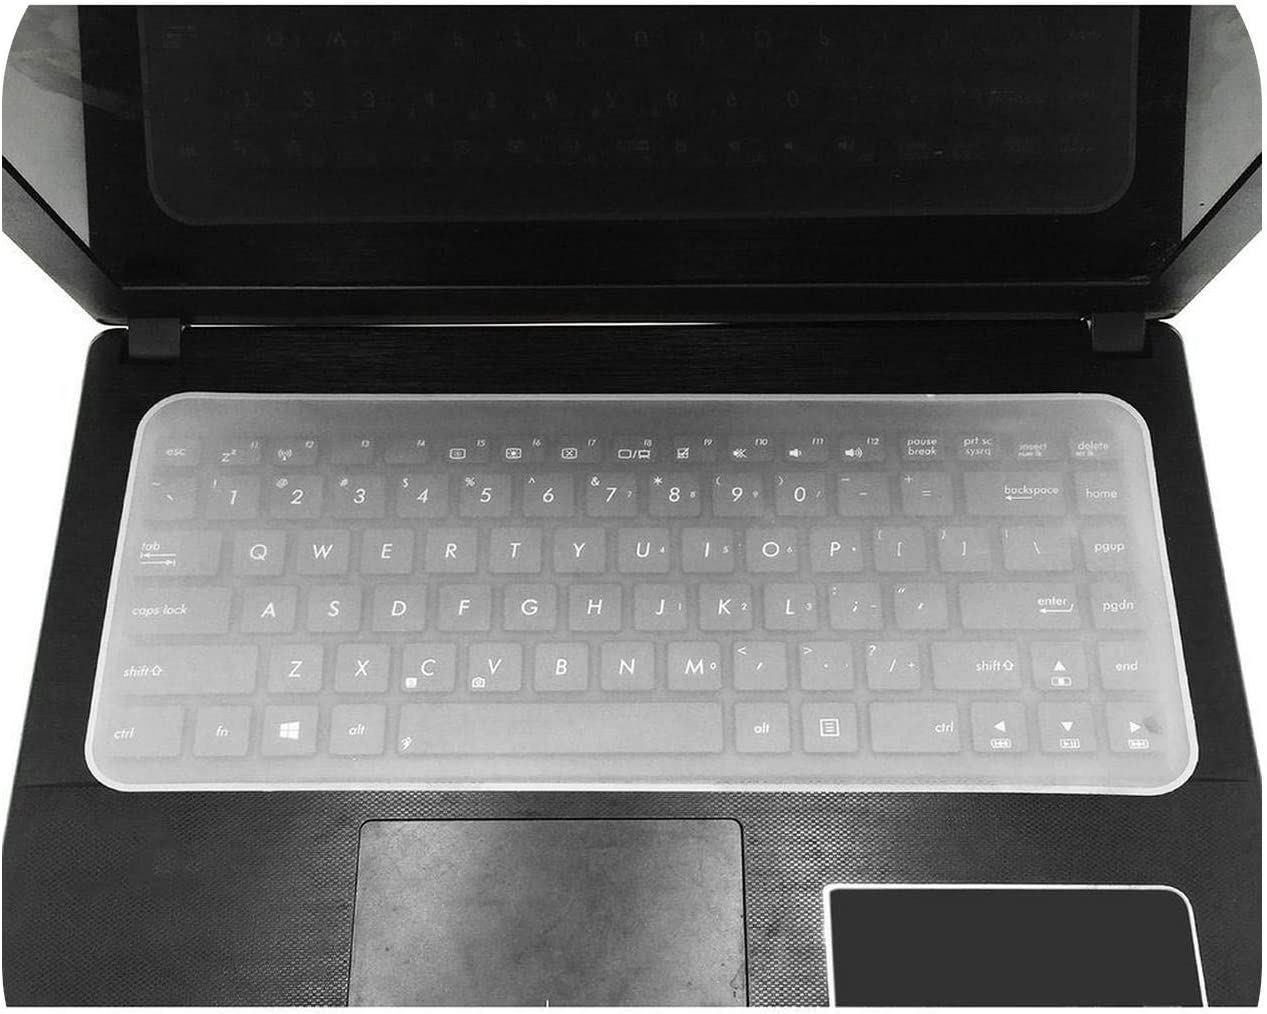 Waterproof Dustproof Tablet Keyboard Protector Guard for 13 17 Inch Notebook -One/_Color Keyboard Cover Skin Silicone Film